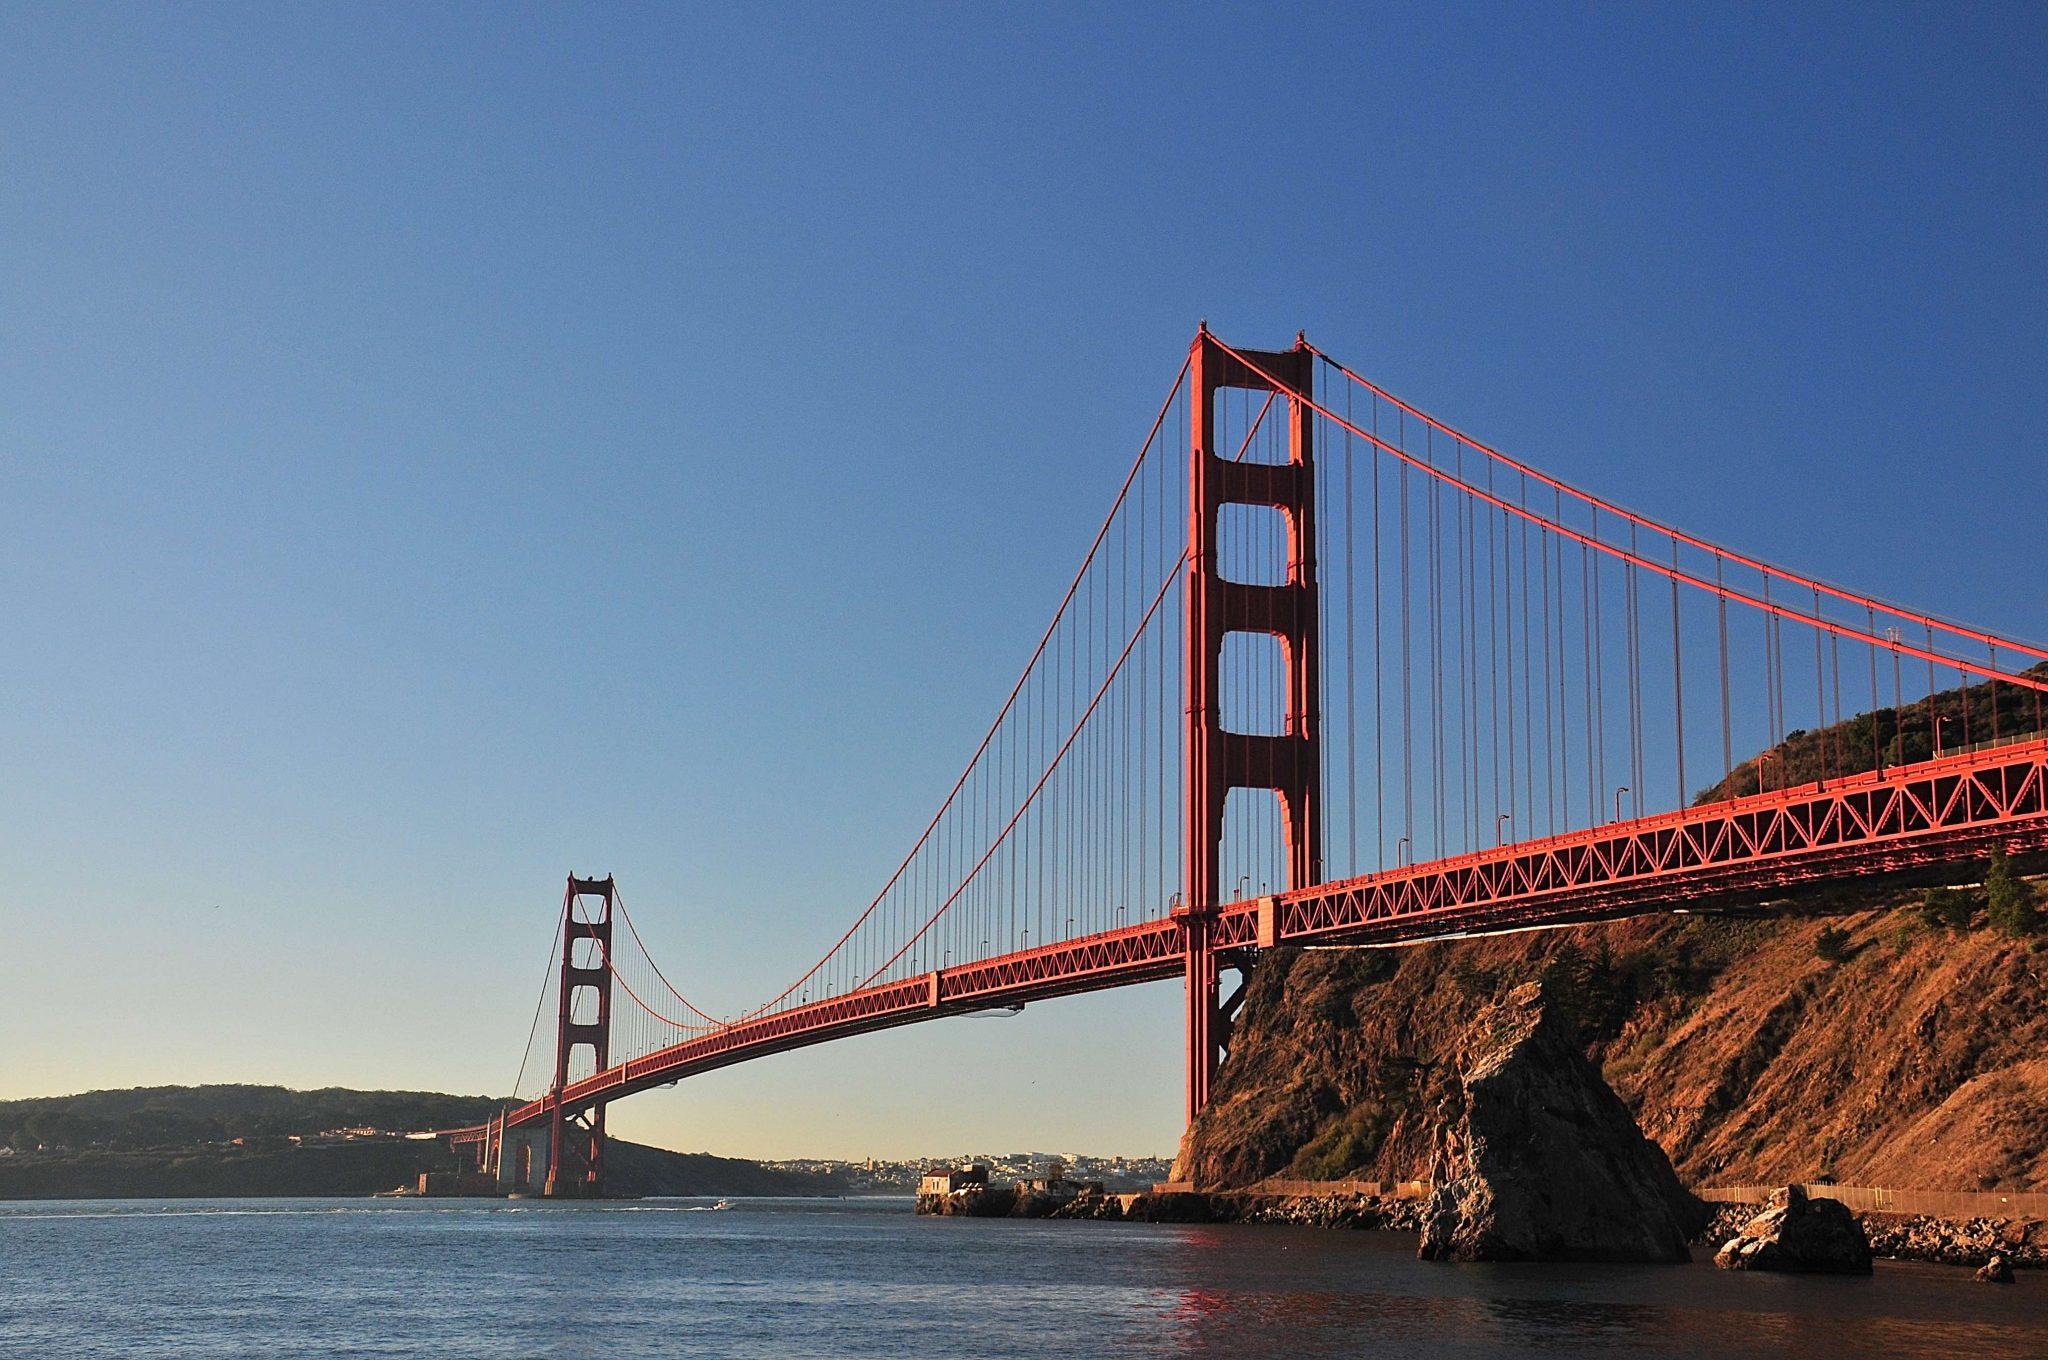 Sausalito: nah der Golden Gate Bridge